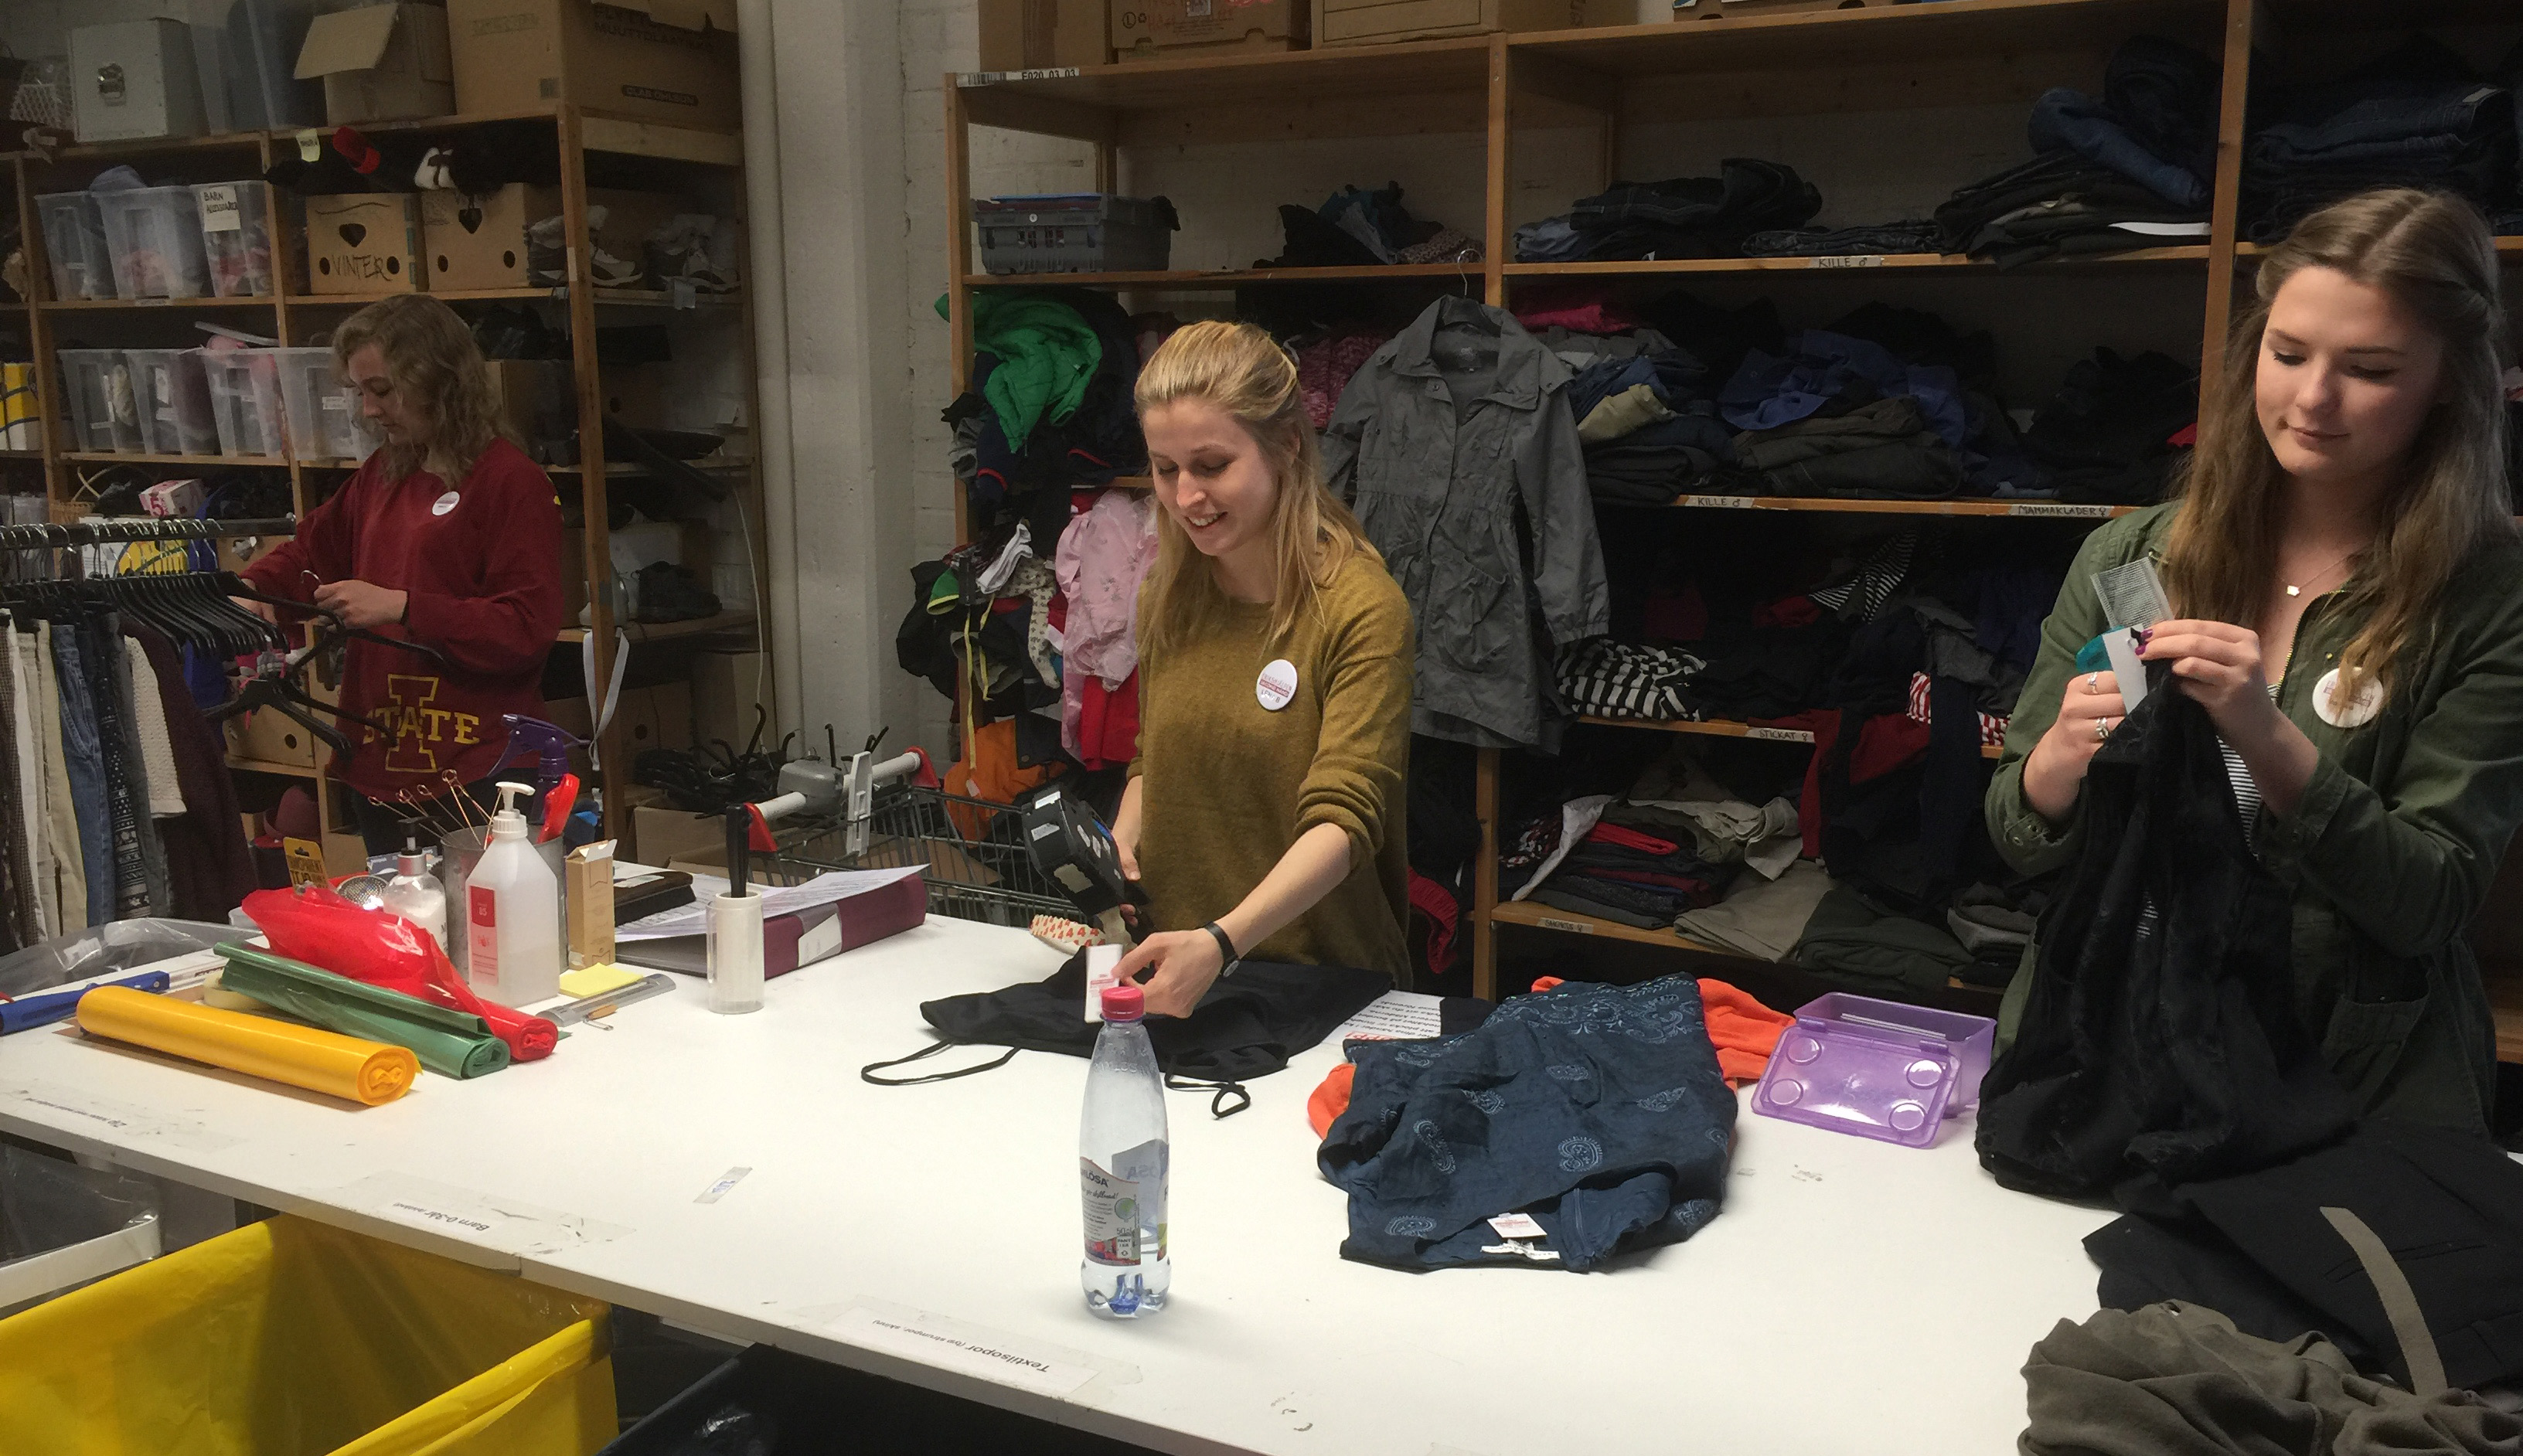 Student volunteers Emma Grace Reese (left) and Emma Bruen (right) work with a staff member at Erikshjälpen Second Hand.